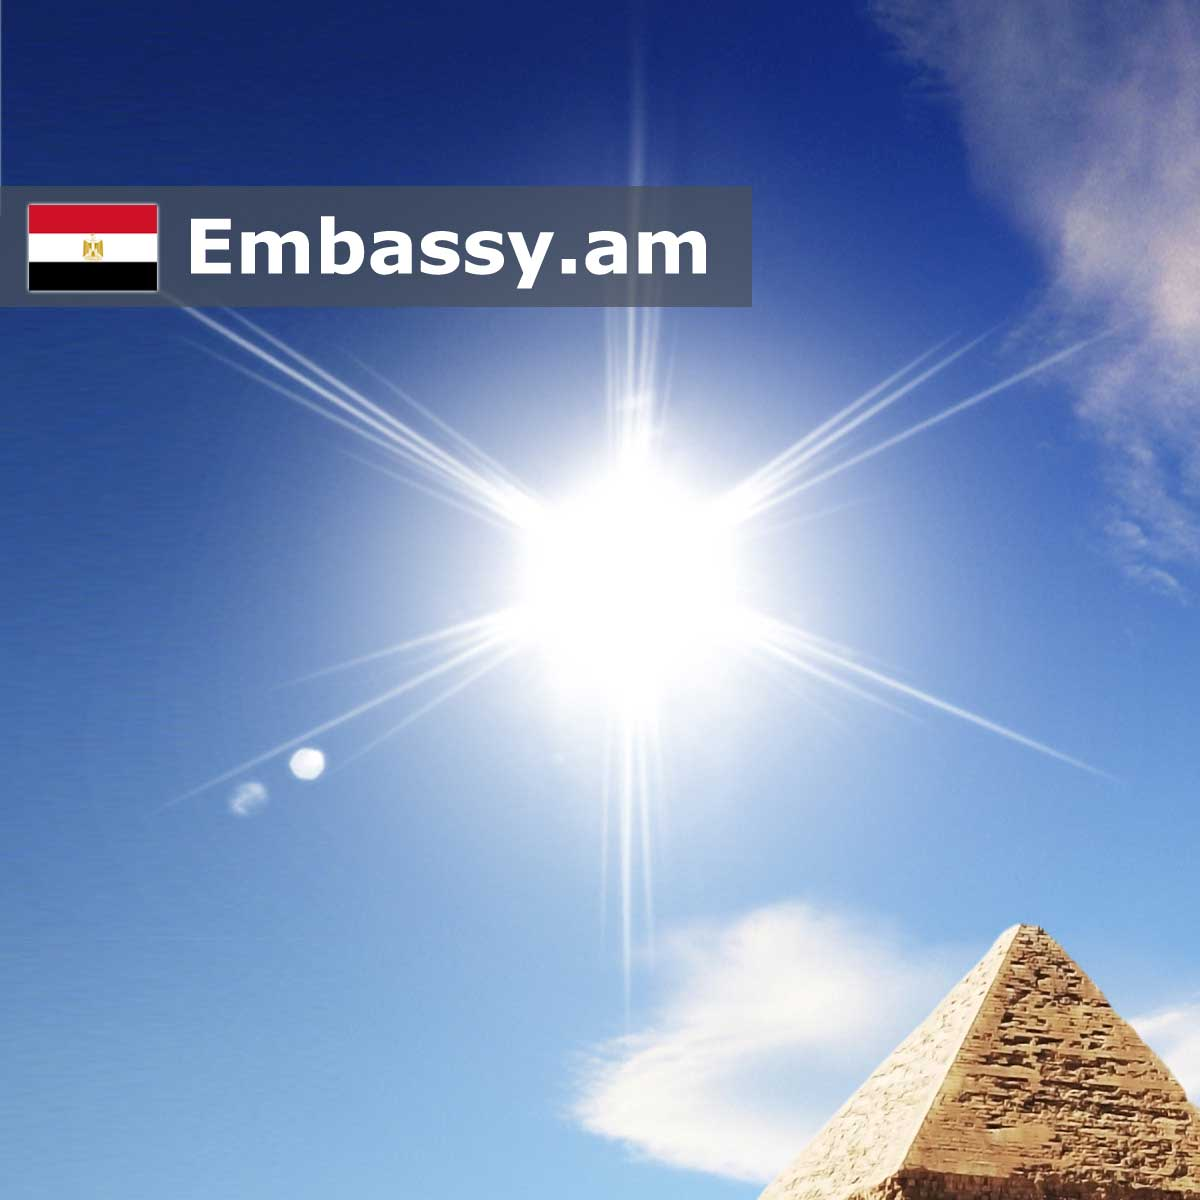 Cairo - Hotels in Egypt - Embassy.am